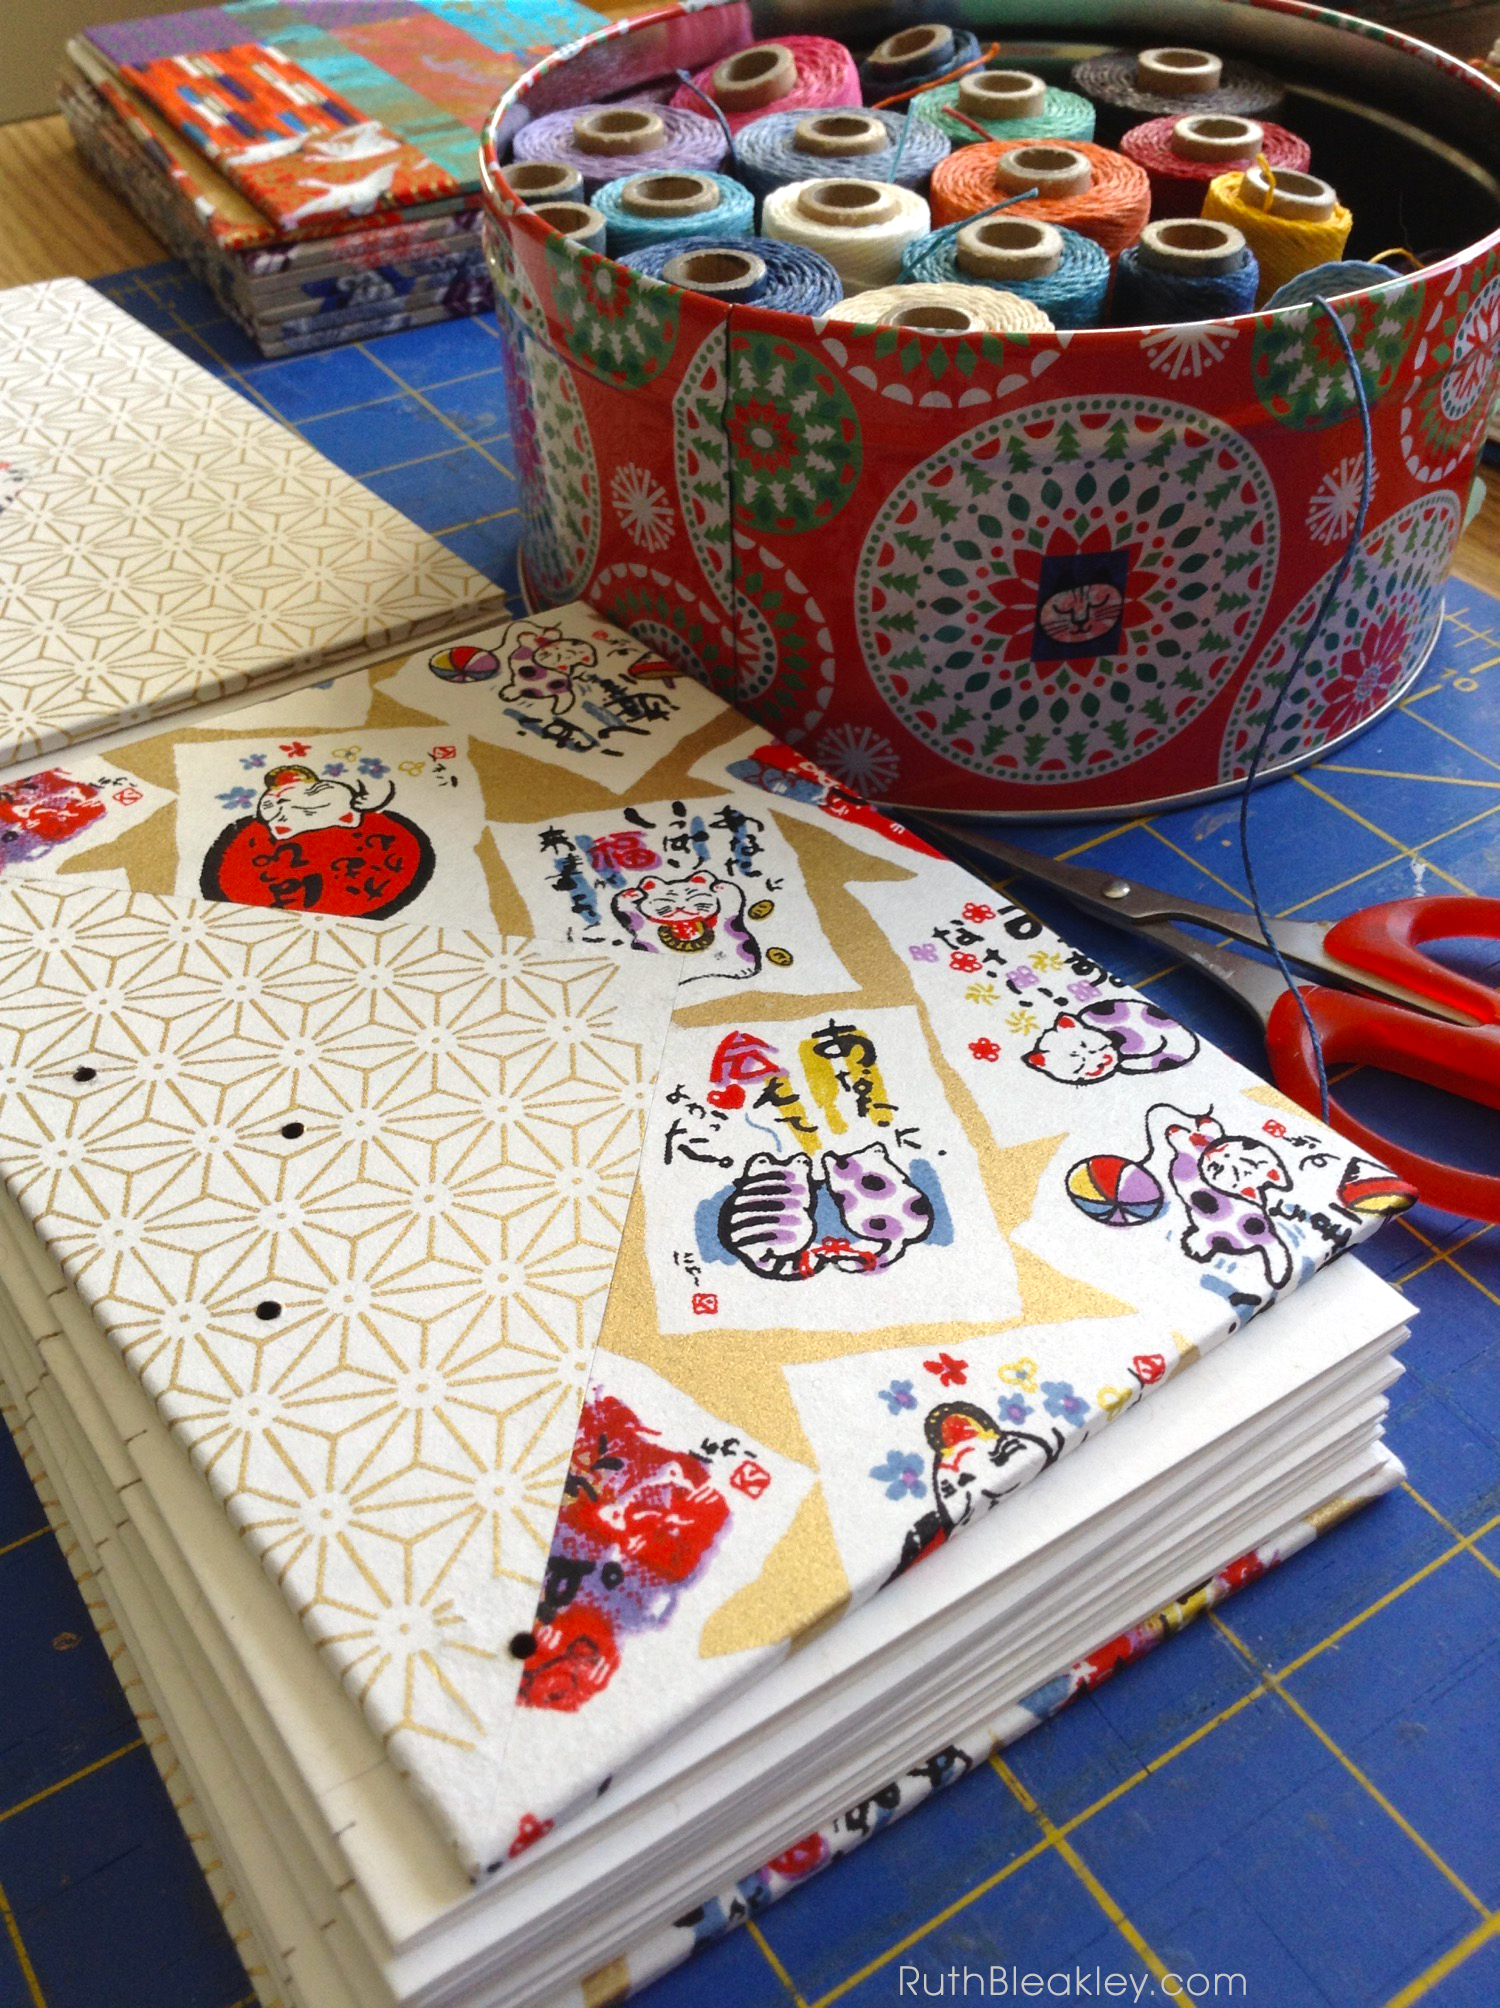 Making Chiyogami Twin Journals with Colorful Triangle Inlays handmade by Ruth Bleakley - 6